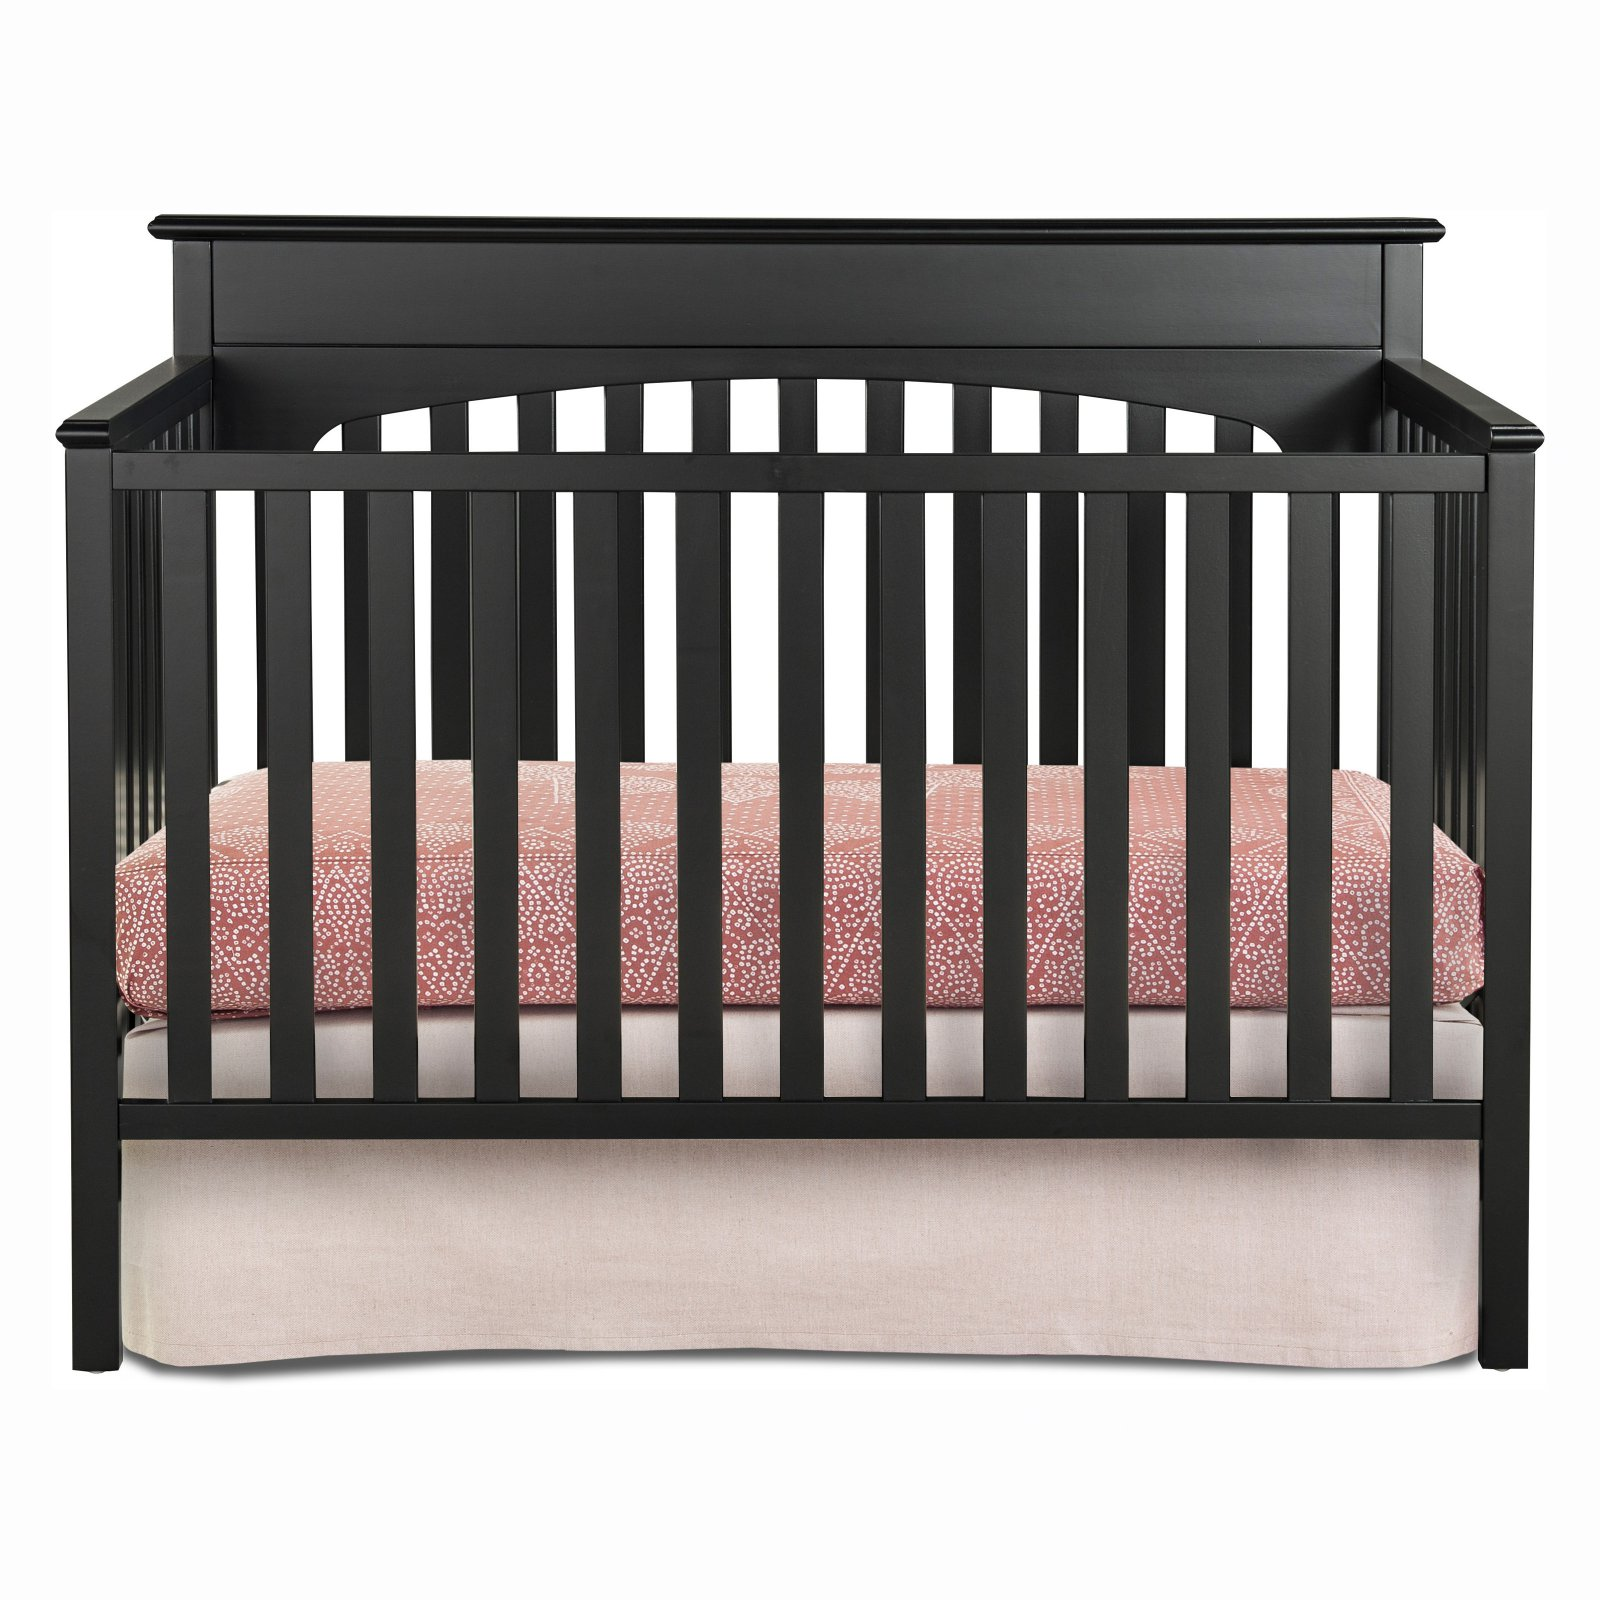 Graco Lauren 4 in 1 Convertible Crib Black